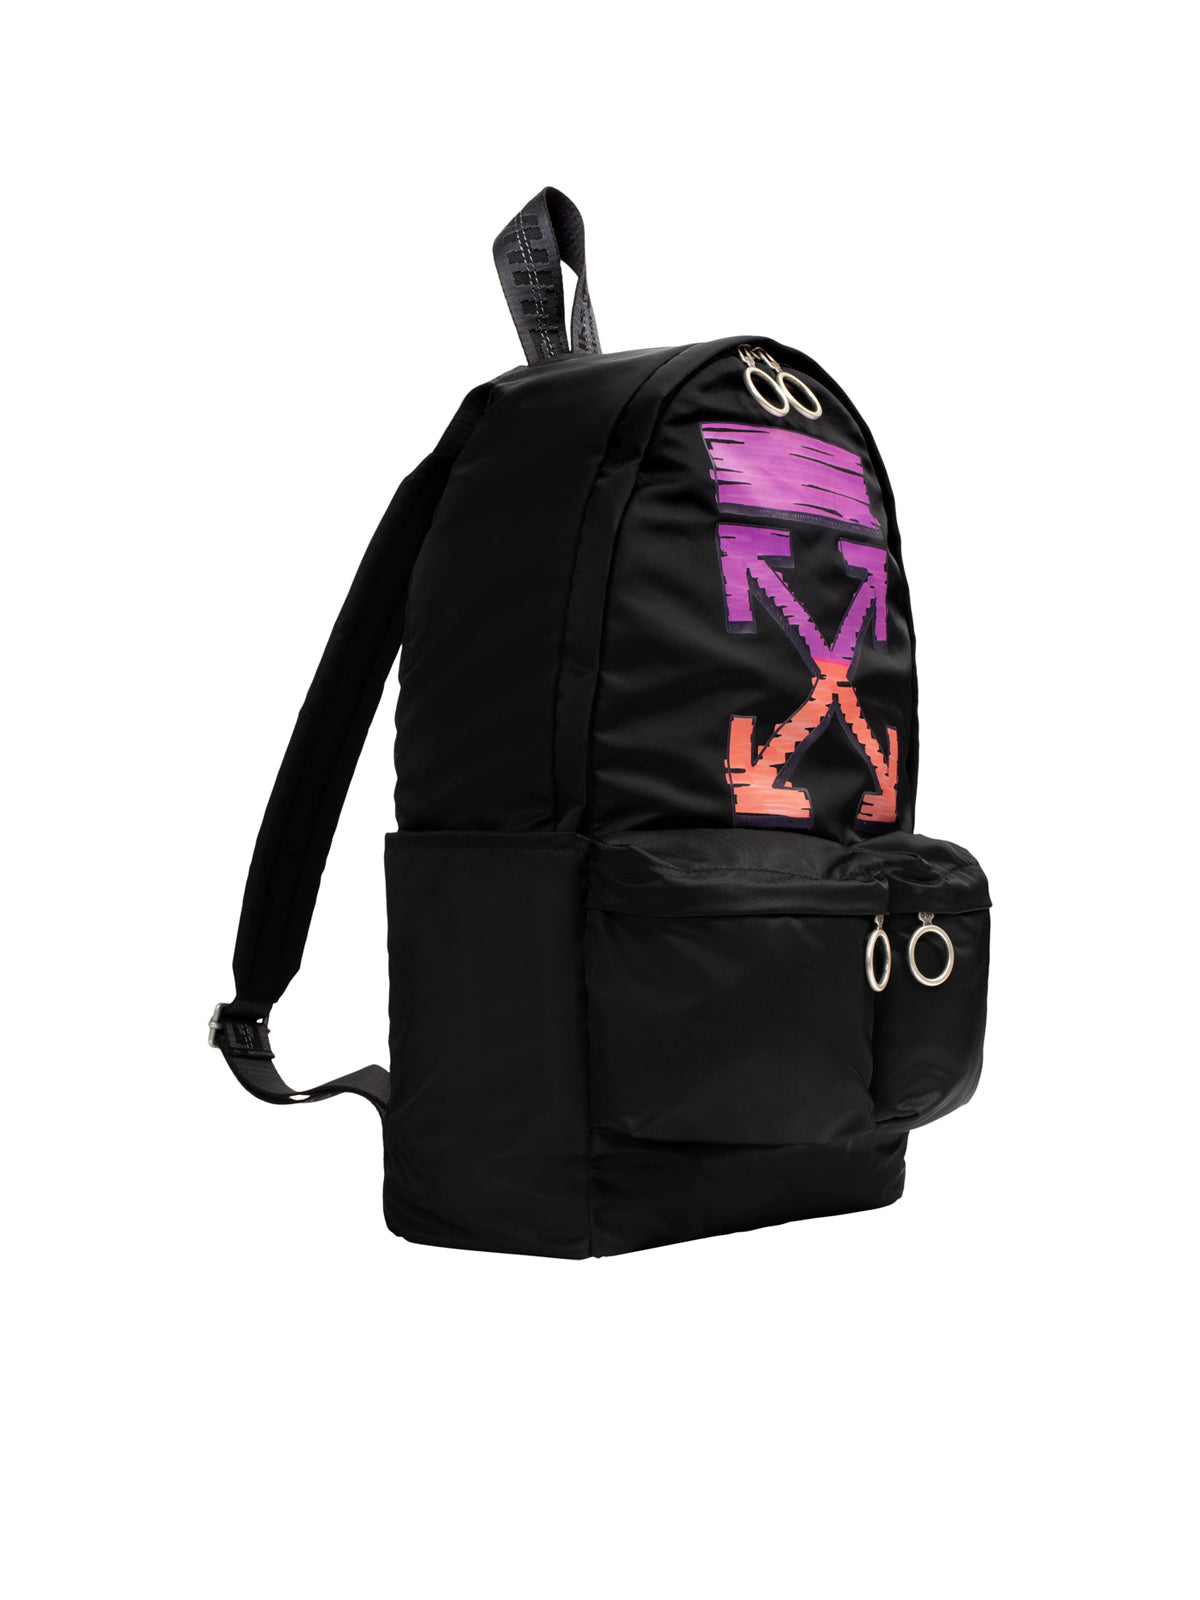 MARKER ARROW EASY BACKPACK